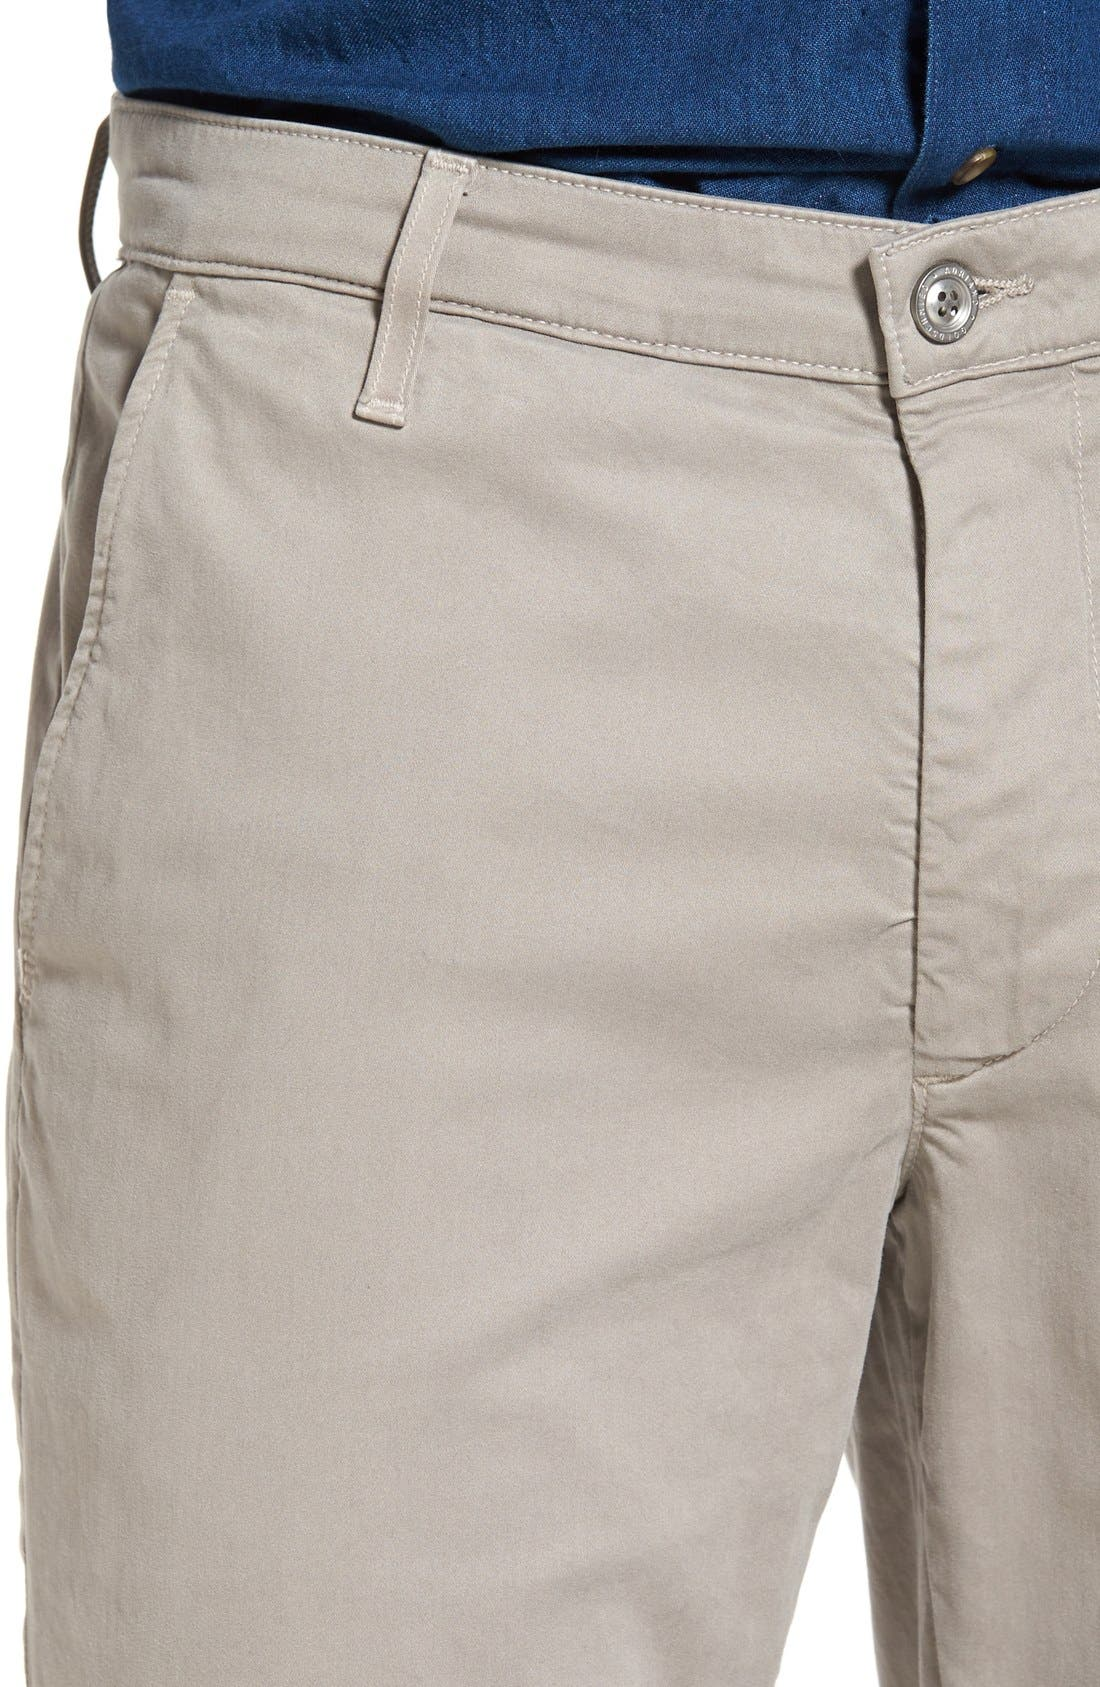 'The Lux' Tailored Straight Leg Chinos,                             Alternate thumbnail 61, color,